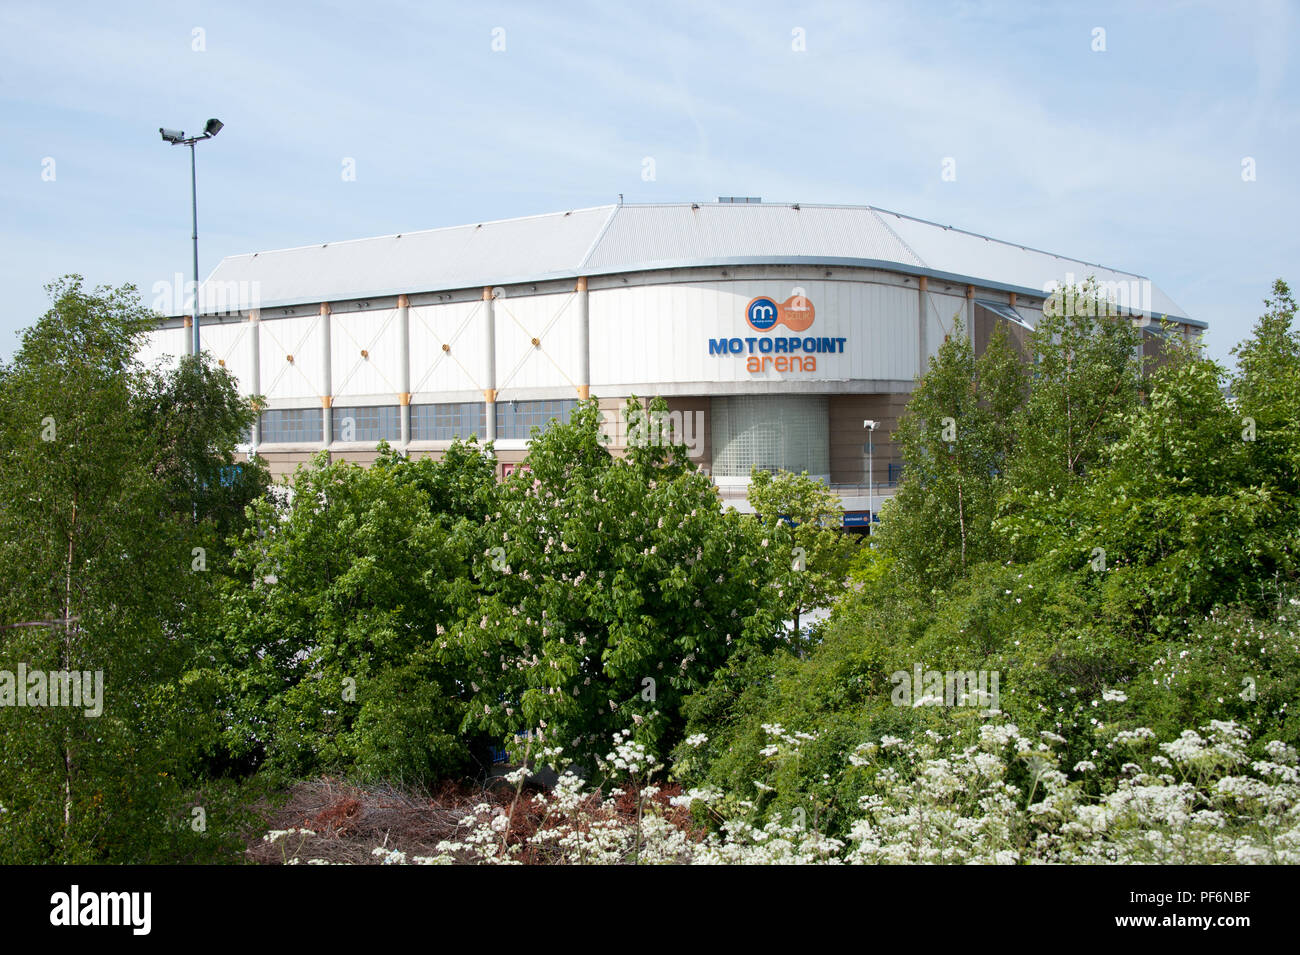 The Sheffield Motorpoint Arena building was named in 2010 and changed its name to FlyDSA Arena Sheffield by Doncaster Airport in 2015 - Stock Image